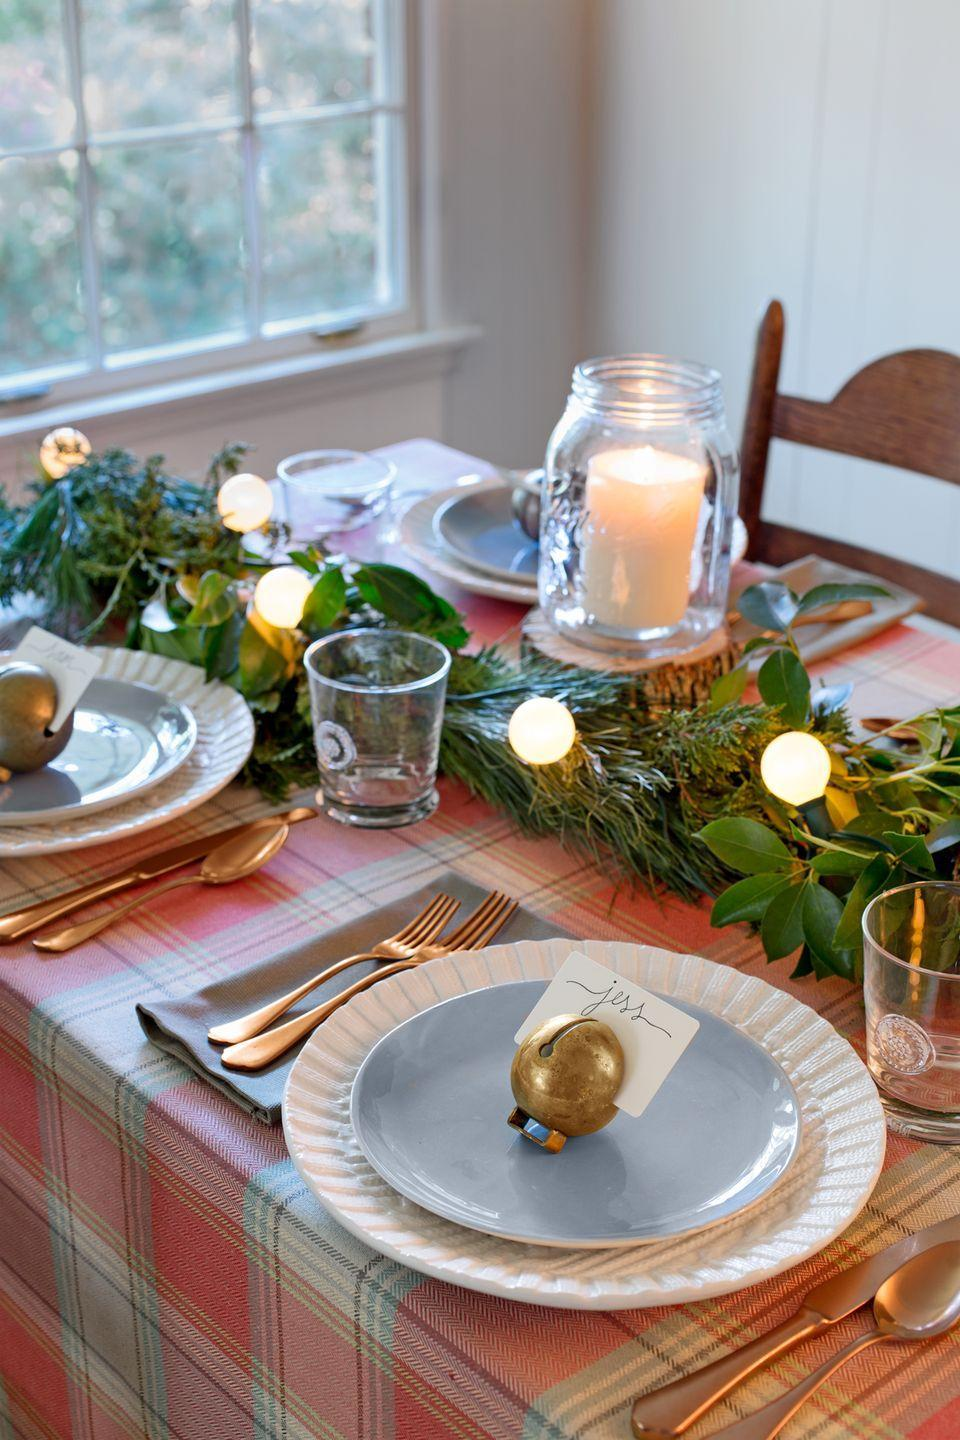 """<p>Look no further than your backyard for the makings of a pretty table runner, then add a pop of plaid with a classic tartan tablecloth. For a whimsical place setting, slide good old handwritten name cards into the slots of <a href=""""https://www.ebay.com/sch/i.html?_from=R40&_trksid=p2380057.m570.l1313.TR0.TRC0.H0.Xvintage+sleigh+bells.TRS0&_nkw=vintage+sleigh+bells&_sacat=0"""" rel=""""nofollow noopener"""" target=""""_blank"""" data-ylk=""""slk:vintage sleigh bells"""" class=""""link rapid-noclick-resp"""">vintage sleigh bells</a> (we found these <a href=""""http://www.ebay.com/itm/9-various-Vintage-solid-brass-sleigh-bells-Sizes-32-35mm-Rivet-mount-MMM-/332359103012"""" rel=""""nofollow noopener"""" target=""""_blank"""" data-ylk=""""slk:on eBay"""" class=""""link rapid-noclick-resp"""">on eBay</a>). Use candles in <a href=""""https://www.amazon.com/Ball-ounce-Jar-Wide-Mouth/dp/B01N1SIQP2/?tag=syn-yahoo-20&ascsubtag=%5Bartid%7C10050.g.2781%5Bsrc%7Cyahoo-us"""" rel=""""nofollow noopener"""" target=""""_blank"""" data-ylk=""""slk:oversized Mason jars"""" class=""""link rapid-noclick-resp"""">oversized Mason jars</a> and <a href=""""https://www.amazon.com/Flatware-Luxury-Stainless-Silverware-Service/dp/B01CNLZ6FW/?tag=syn-yahoo-20&ascsubtag=%5Bartid%7C10050.g.2781%5Bsrc%7Cyahoo-us"""" rel=""""nofollow noopener"""" target=""""_blank"""" data-ylk=""""slk:rose-gold flatware"""" class=""""link rapid-noclick-resp"""">rose-gold flatware</a>—both help to reinforce the warm, magical vibe. </p><p><a class=""""link rapid-noclick-resp"""" href=""""https://www.amazon.com/Ball-ounce-Jar-Wide-Mouth/dp/B01N1SIQP2/?tag=syn-yahoo-20&ascsubtag=%5Bartid%7C10050.g.2781%5Bsrc%7Cyahoo-us"""" rel=""""nofollow noopener"""" target=""""_blank"""" data-ylk=""""slk:SHOP MASON JARS"""">SHOP MASON JARS</a></p>"""